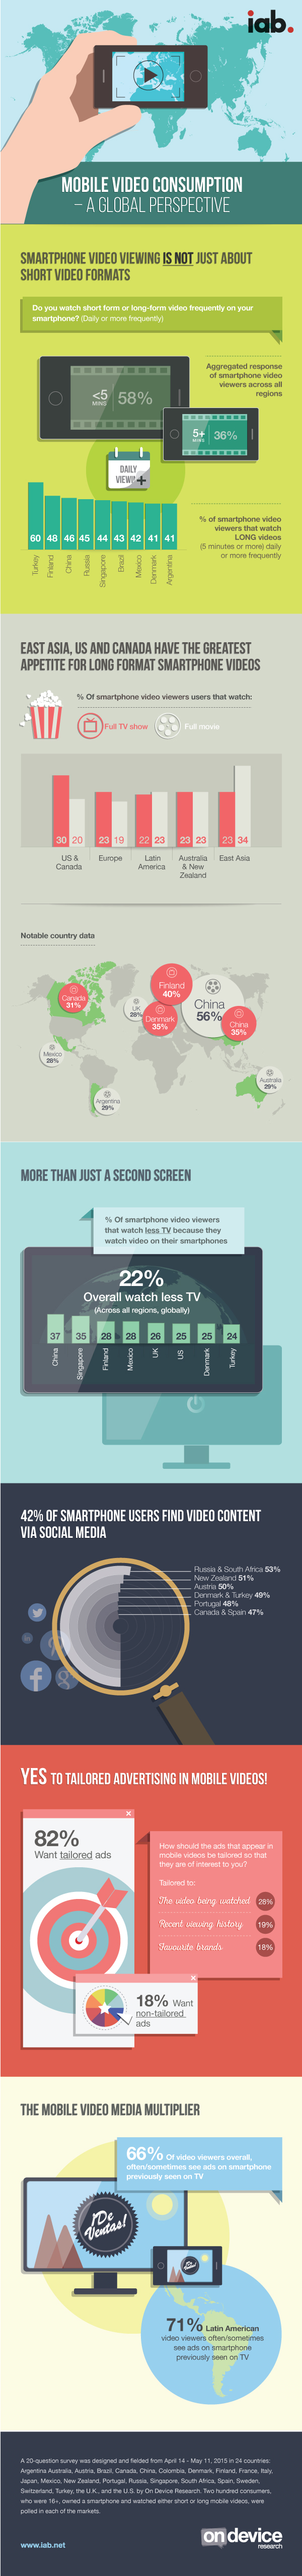 iab-research-mobile-video-usage-a-global-perspective